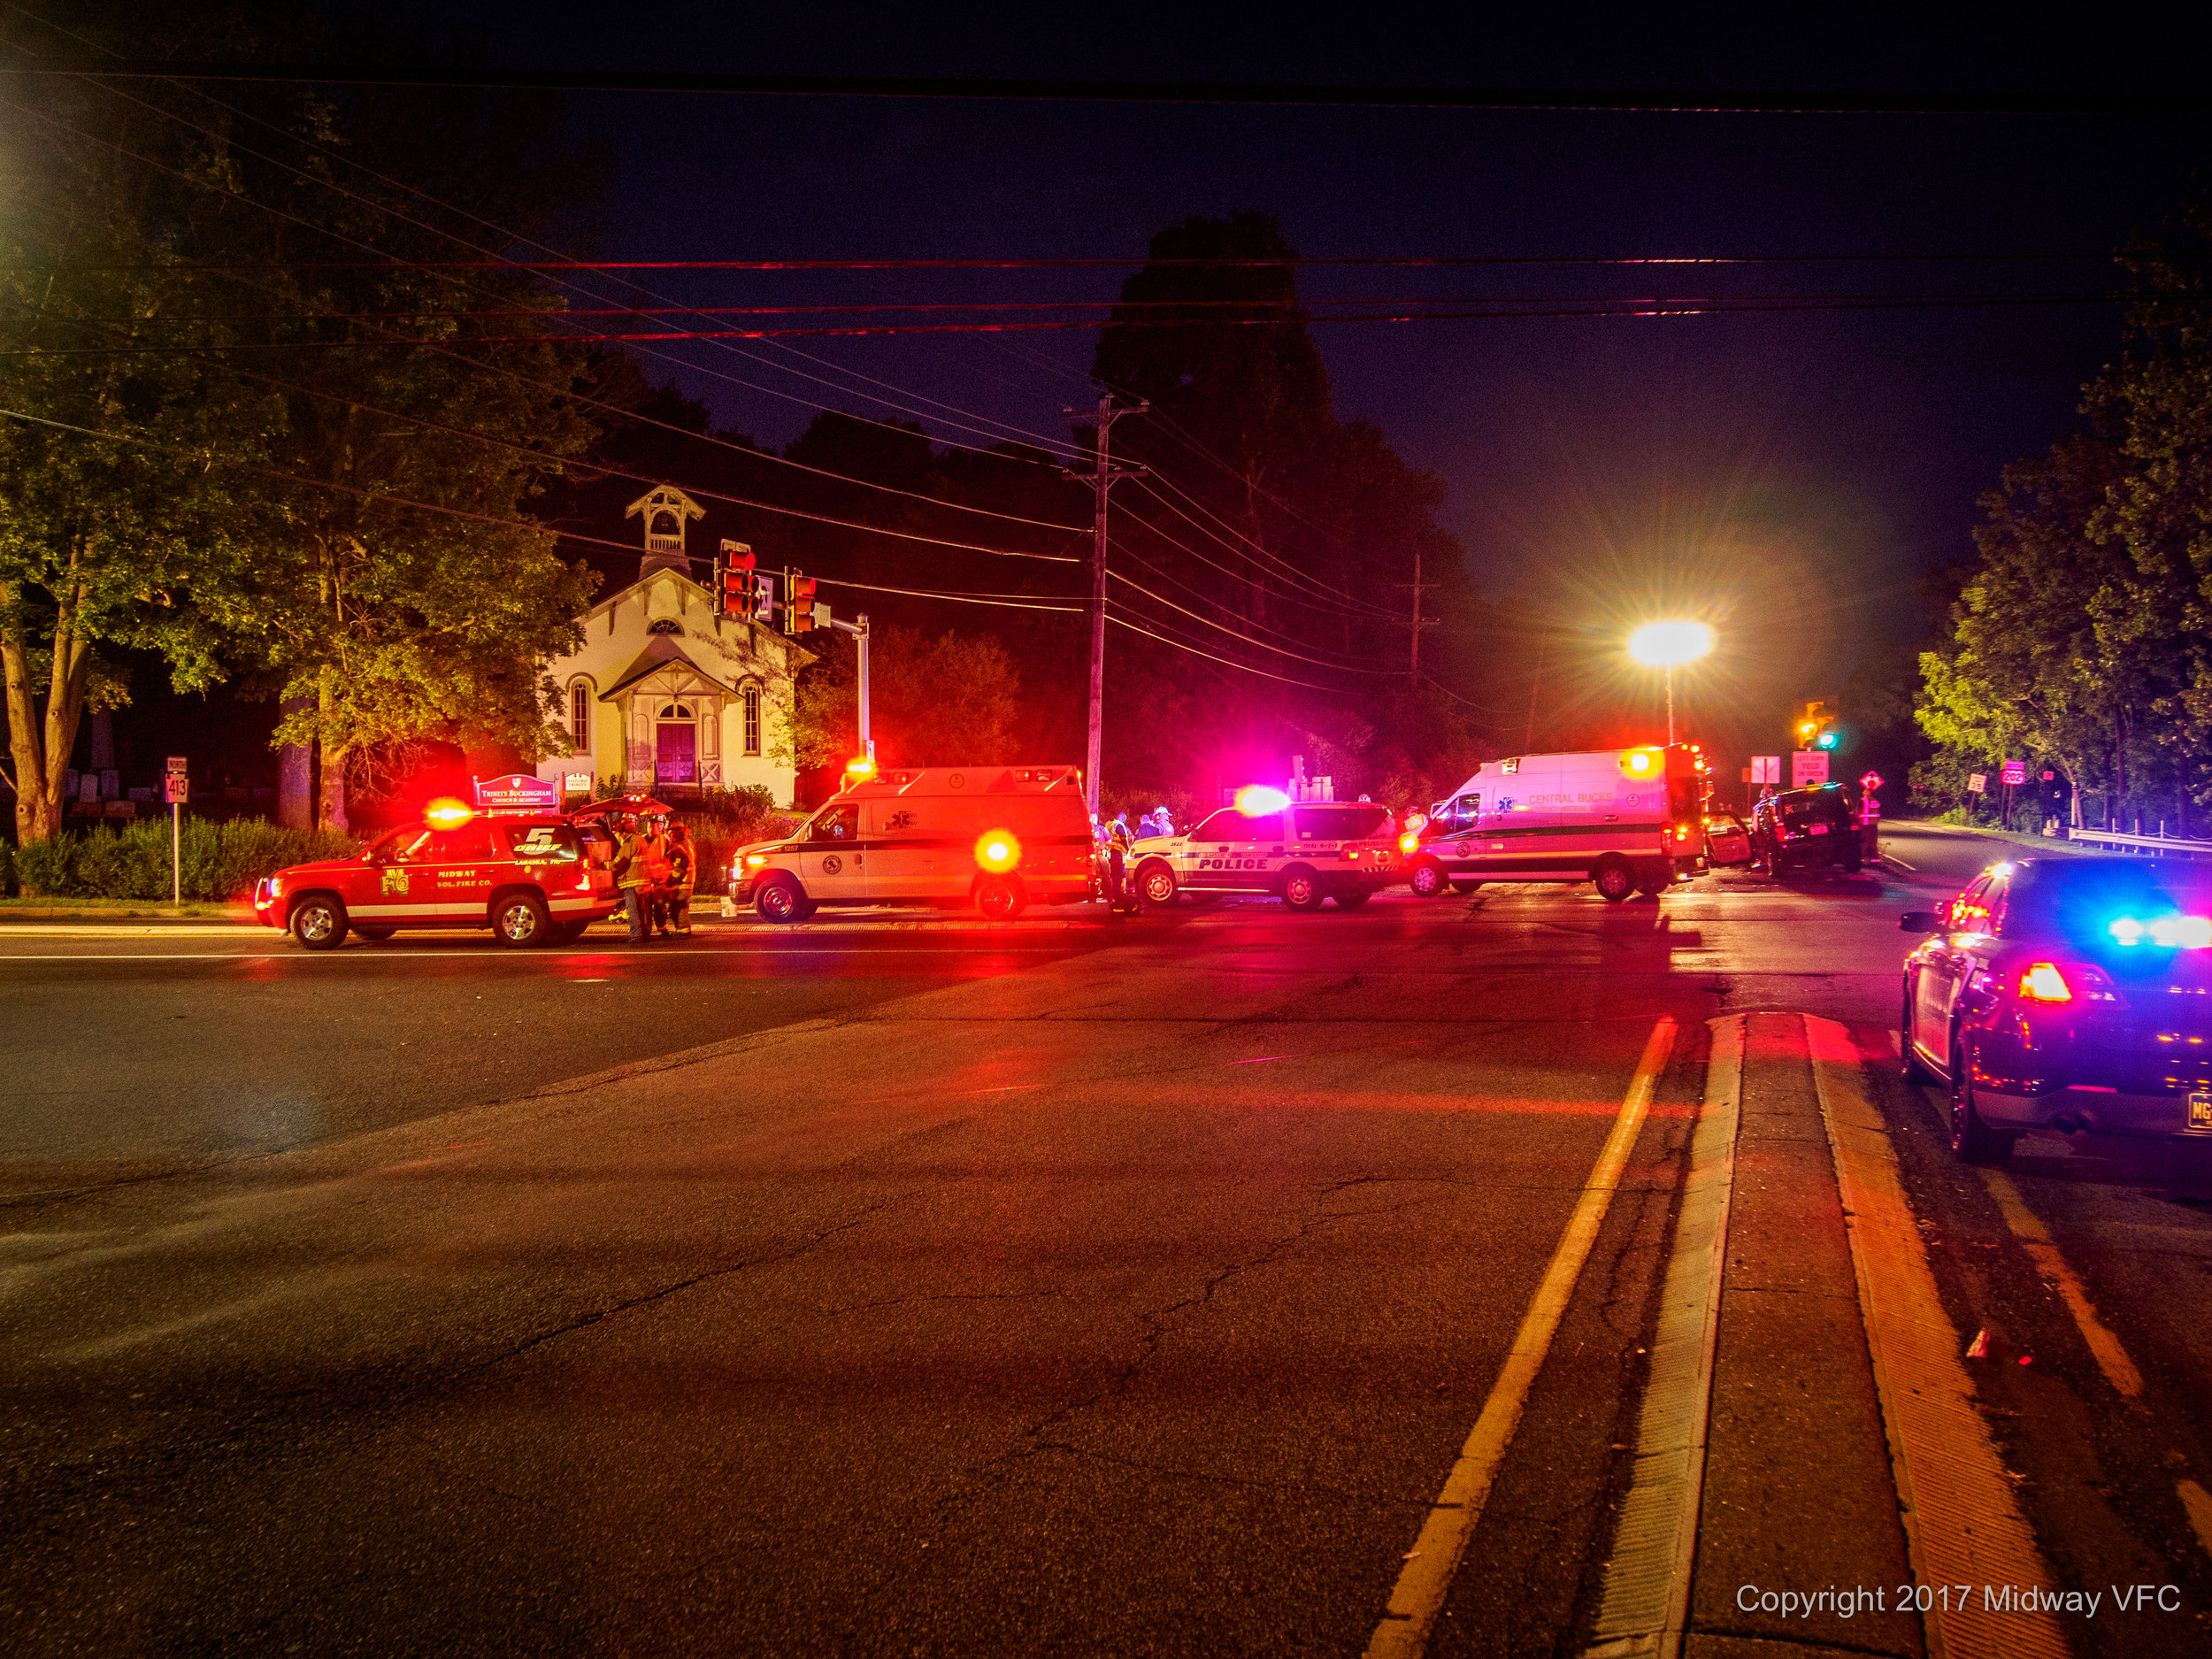 2017.07.03 at 8:59 PM - Midway Volunteer Fire Company responded to a two car accident at Rt 202 & RT 413 in Buckingham Township. All occupants exited the vehicles. Injuries to occupants appeared to be non-life threatening. No first responders (fie, police or EMT) were injured. The cause of the accident is under investigation.